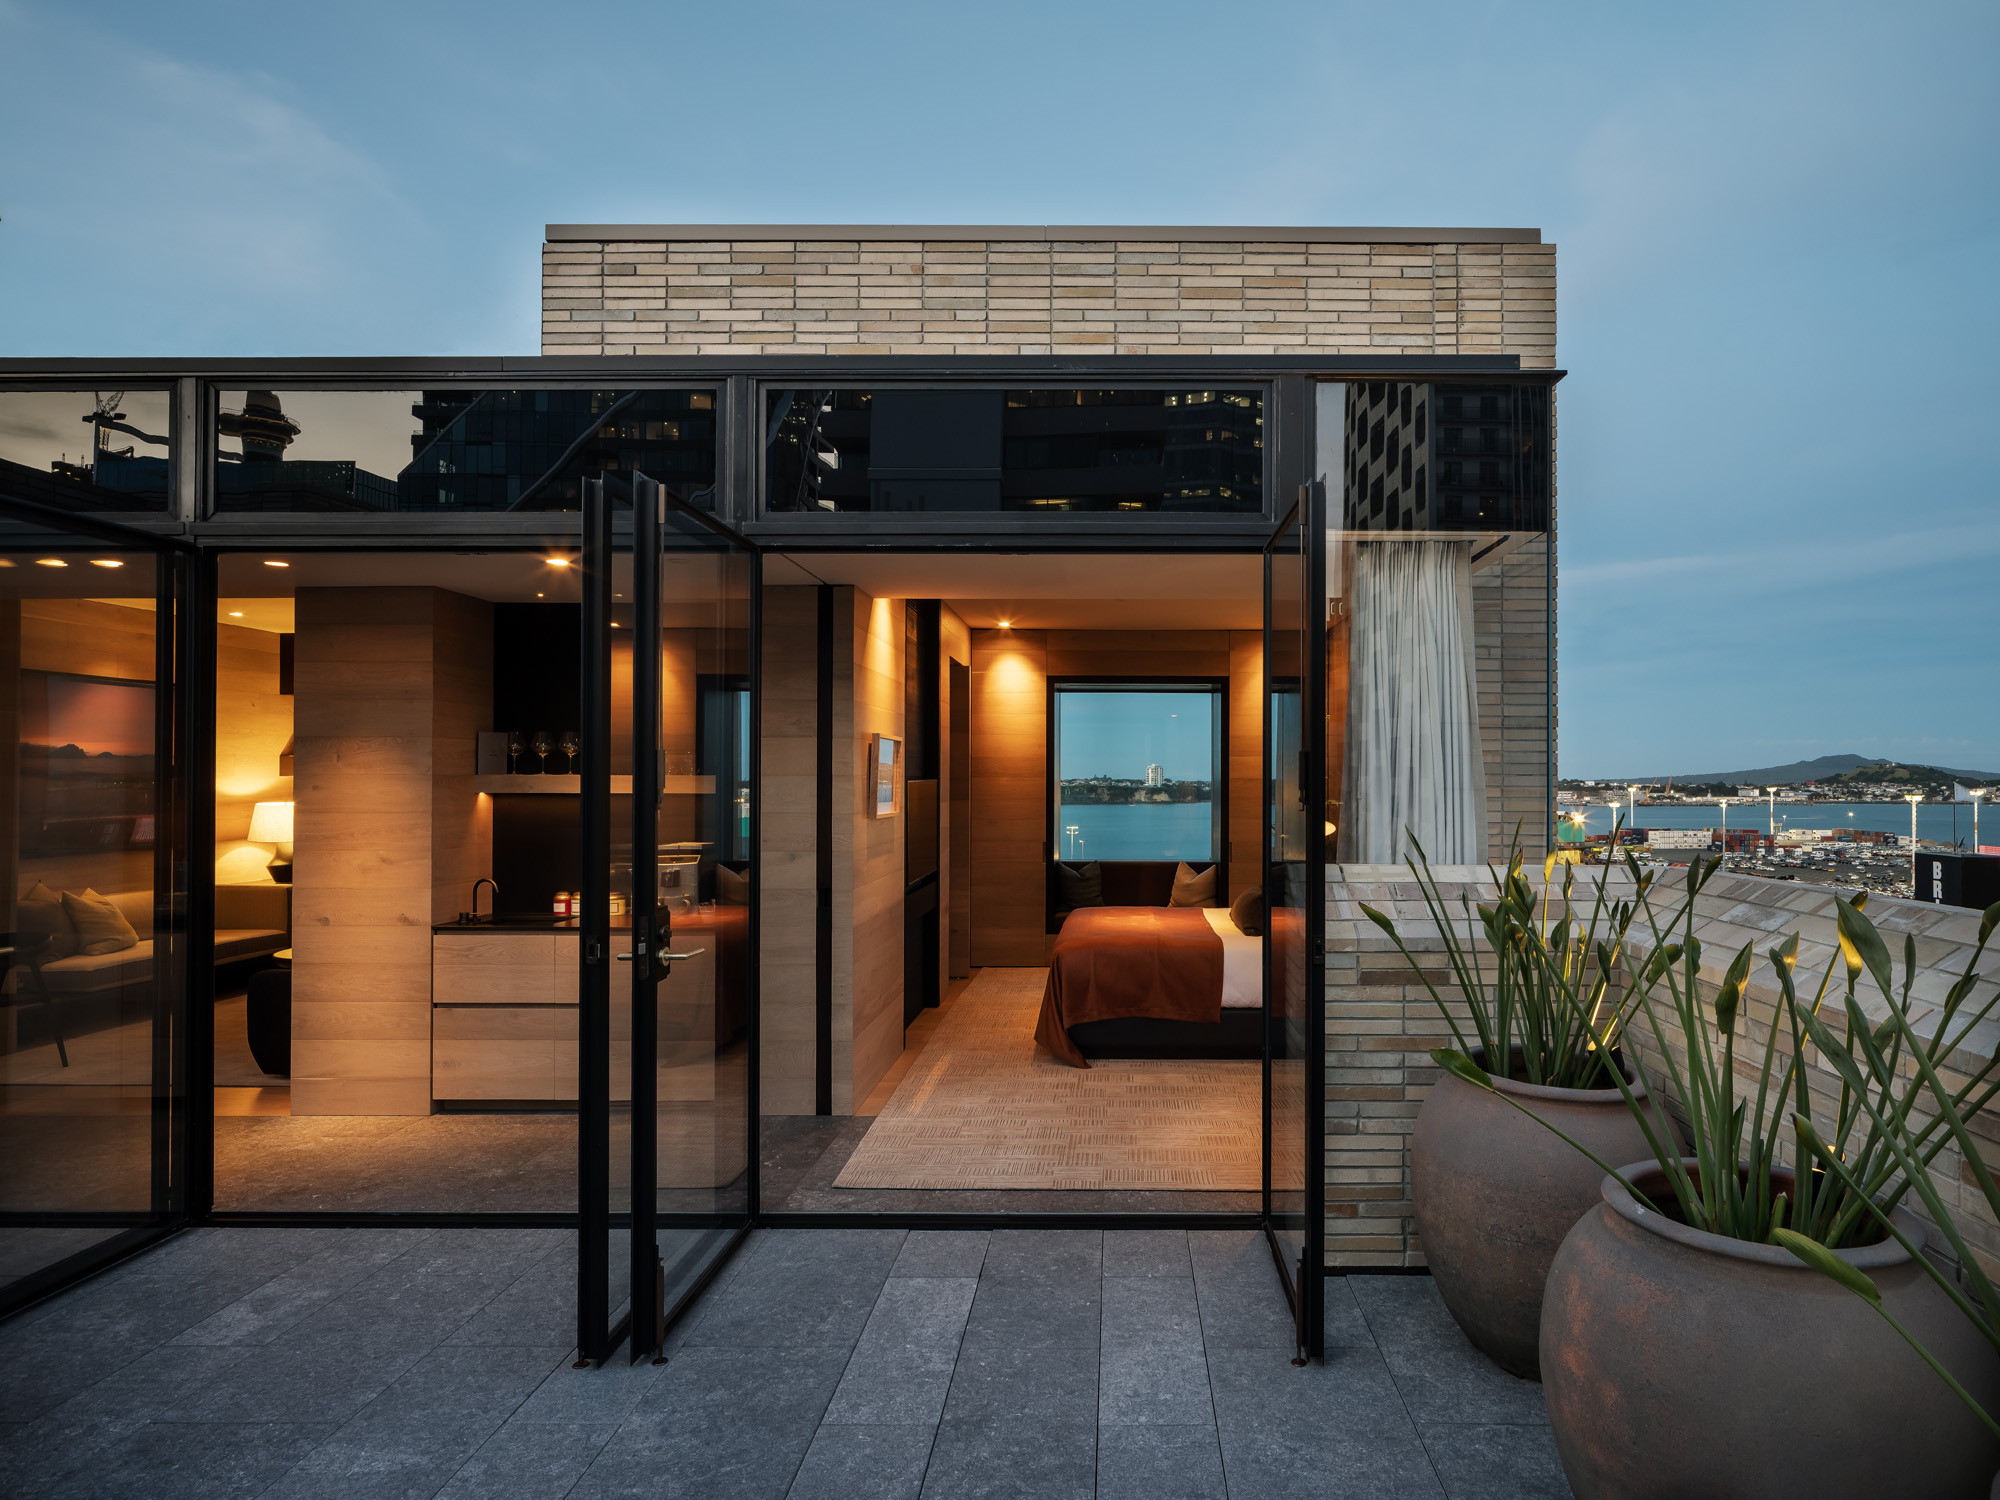 Rangihoua suite with views to Rangitoto - The Landing Suites at The Hotel Britomart